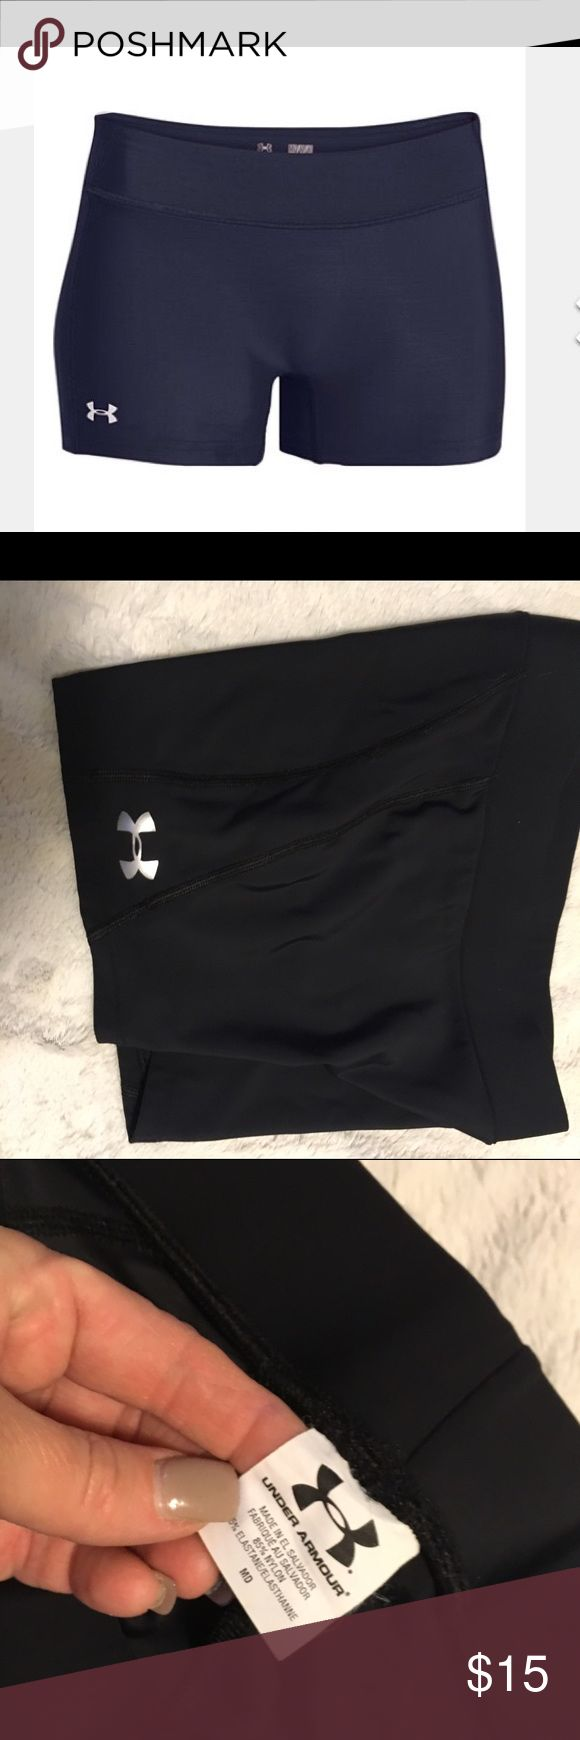 Ladies Under Armour shorts Spandex workout shorts by Under Amour sz medium like brand new 🔥🔥 Under Armour Shorts